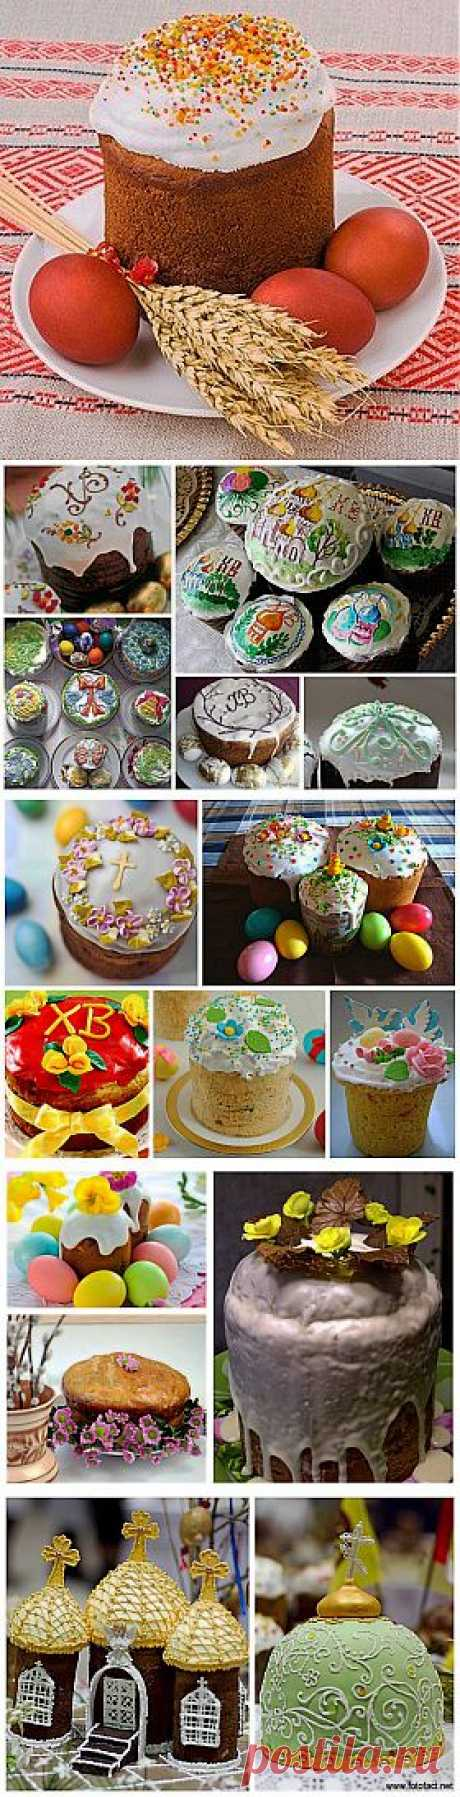 How to decorate an Easter cake: ideas for inspiration